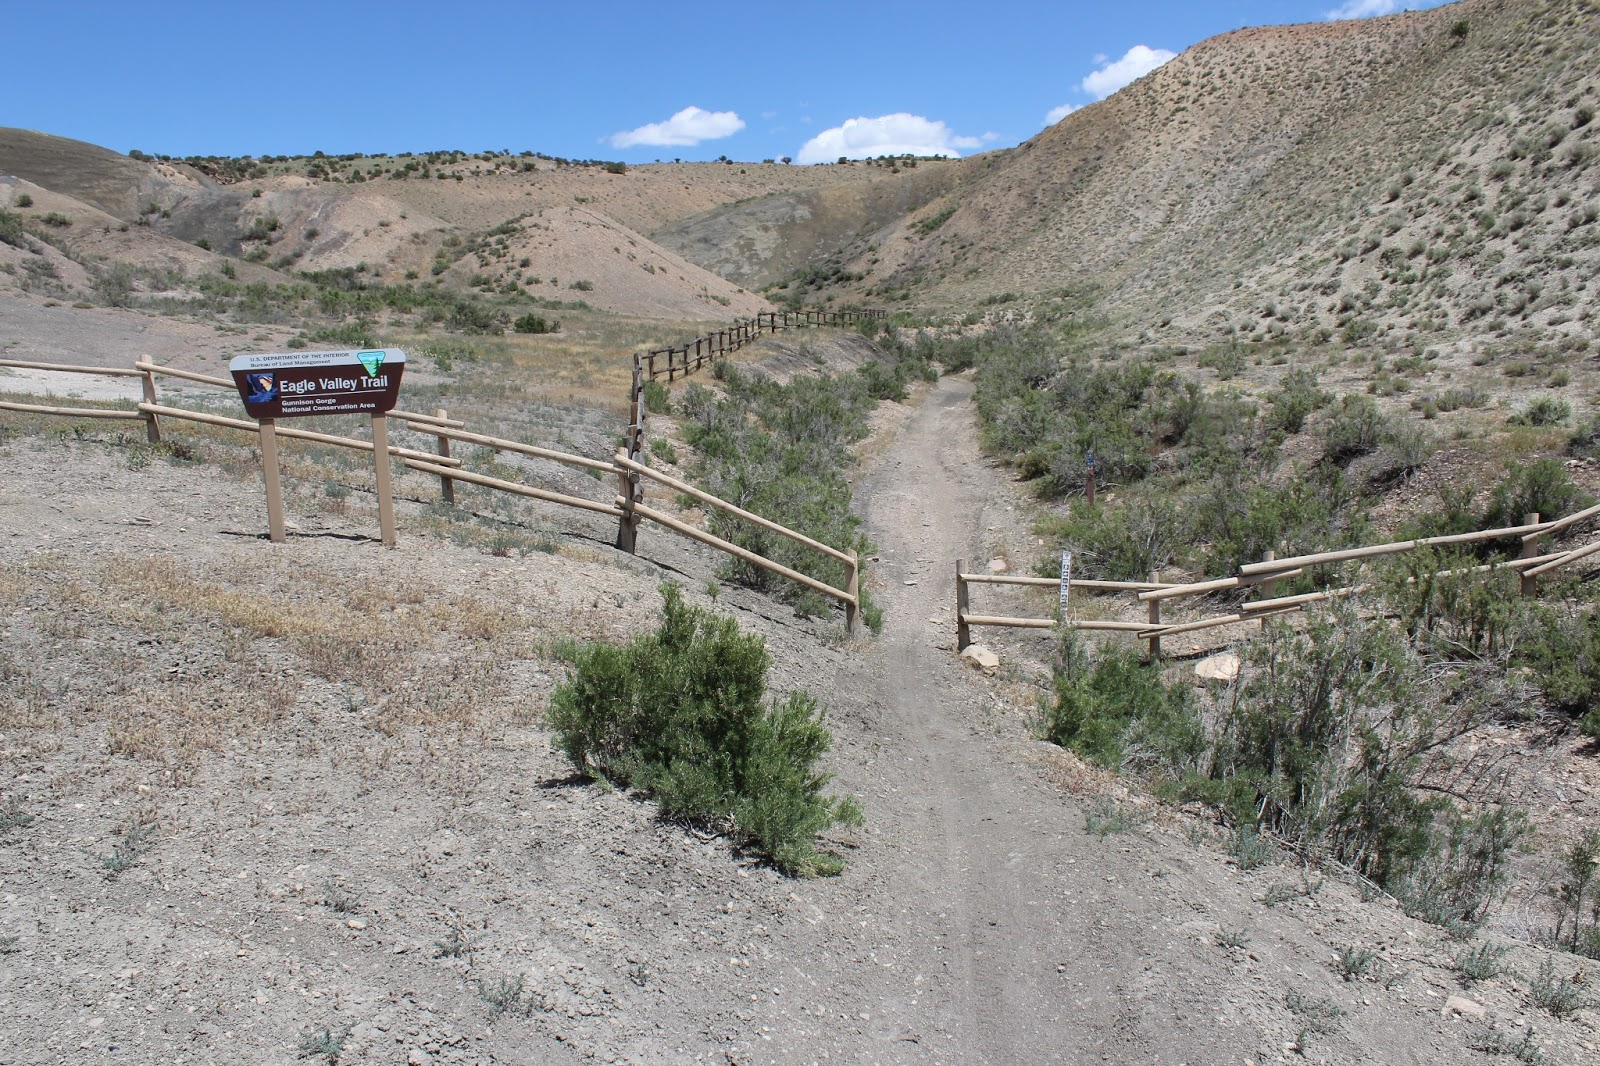 Gjhikes Com Eagle Valley